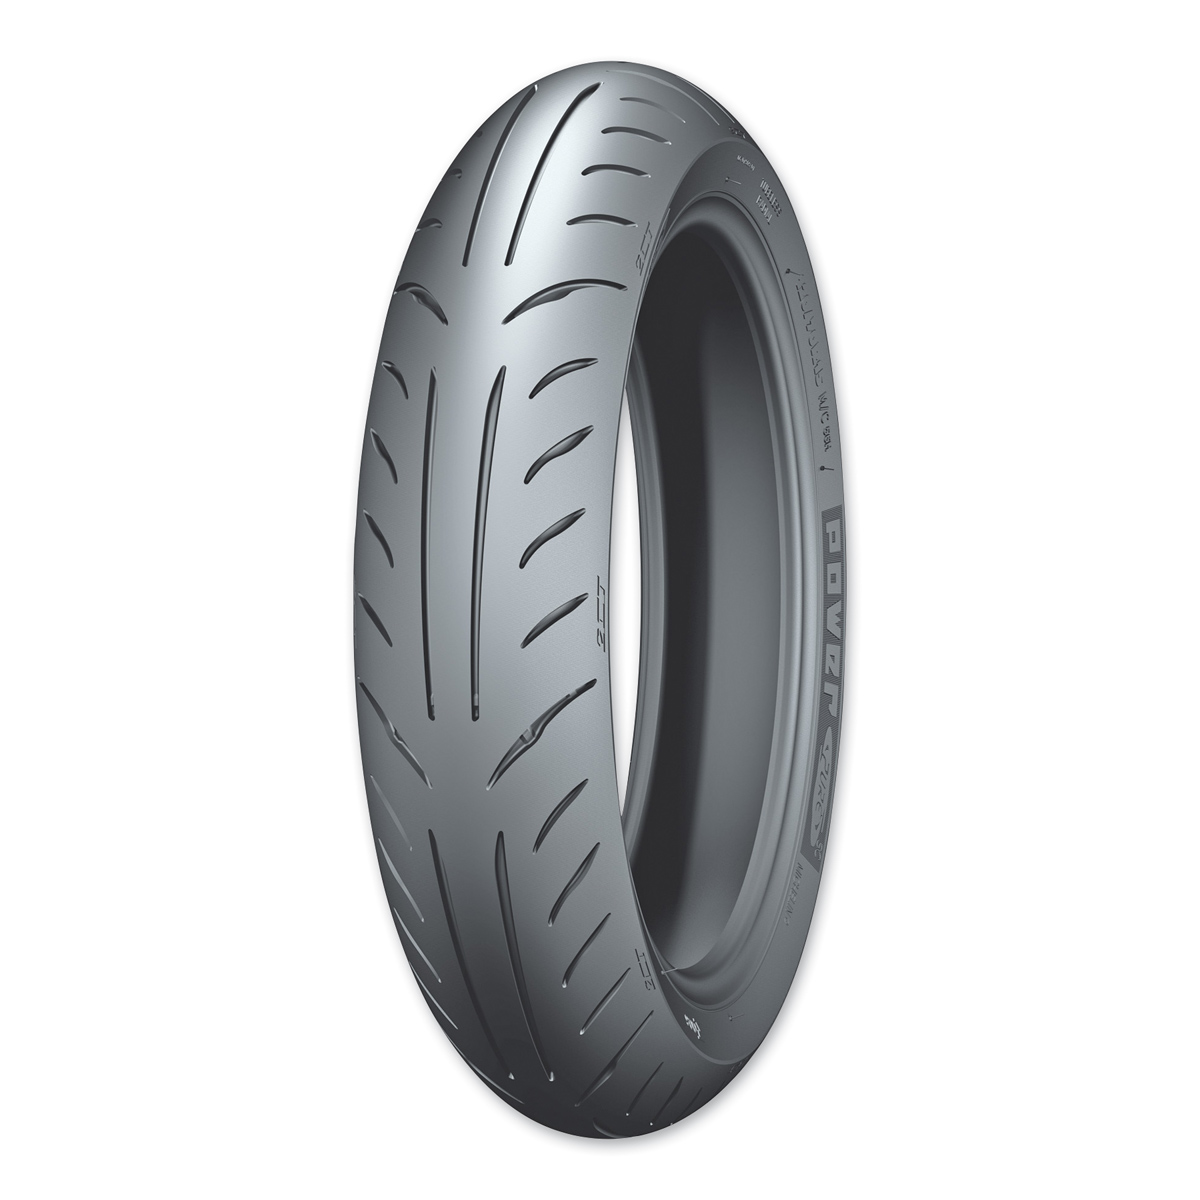 Michelin Powe Pure SC 130/60-13 Front/Rear Tire